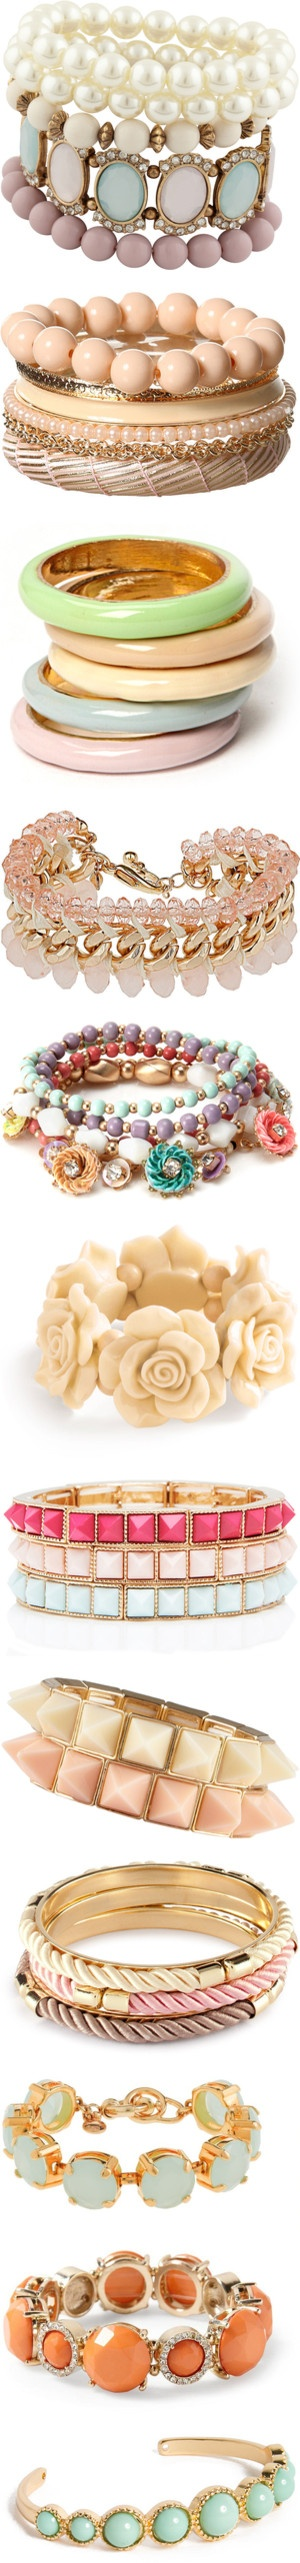 Pastel color jewelry is the 'must need' for this spring. I suggest layering the jewelry to show off your unique style!